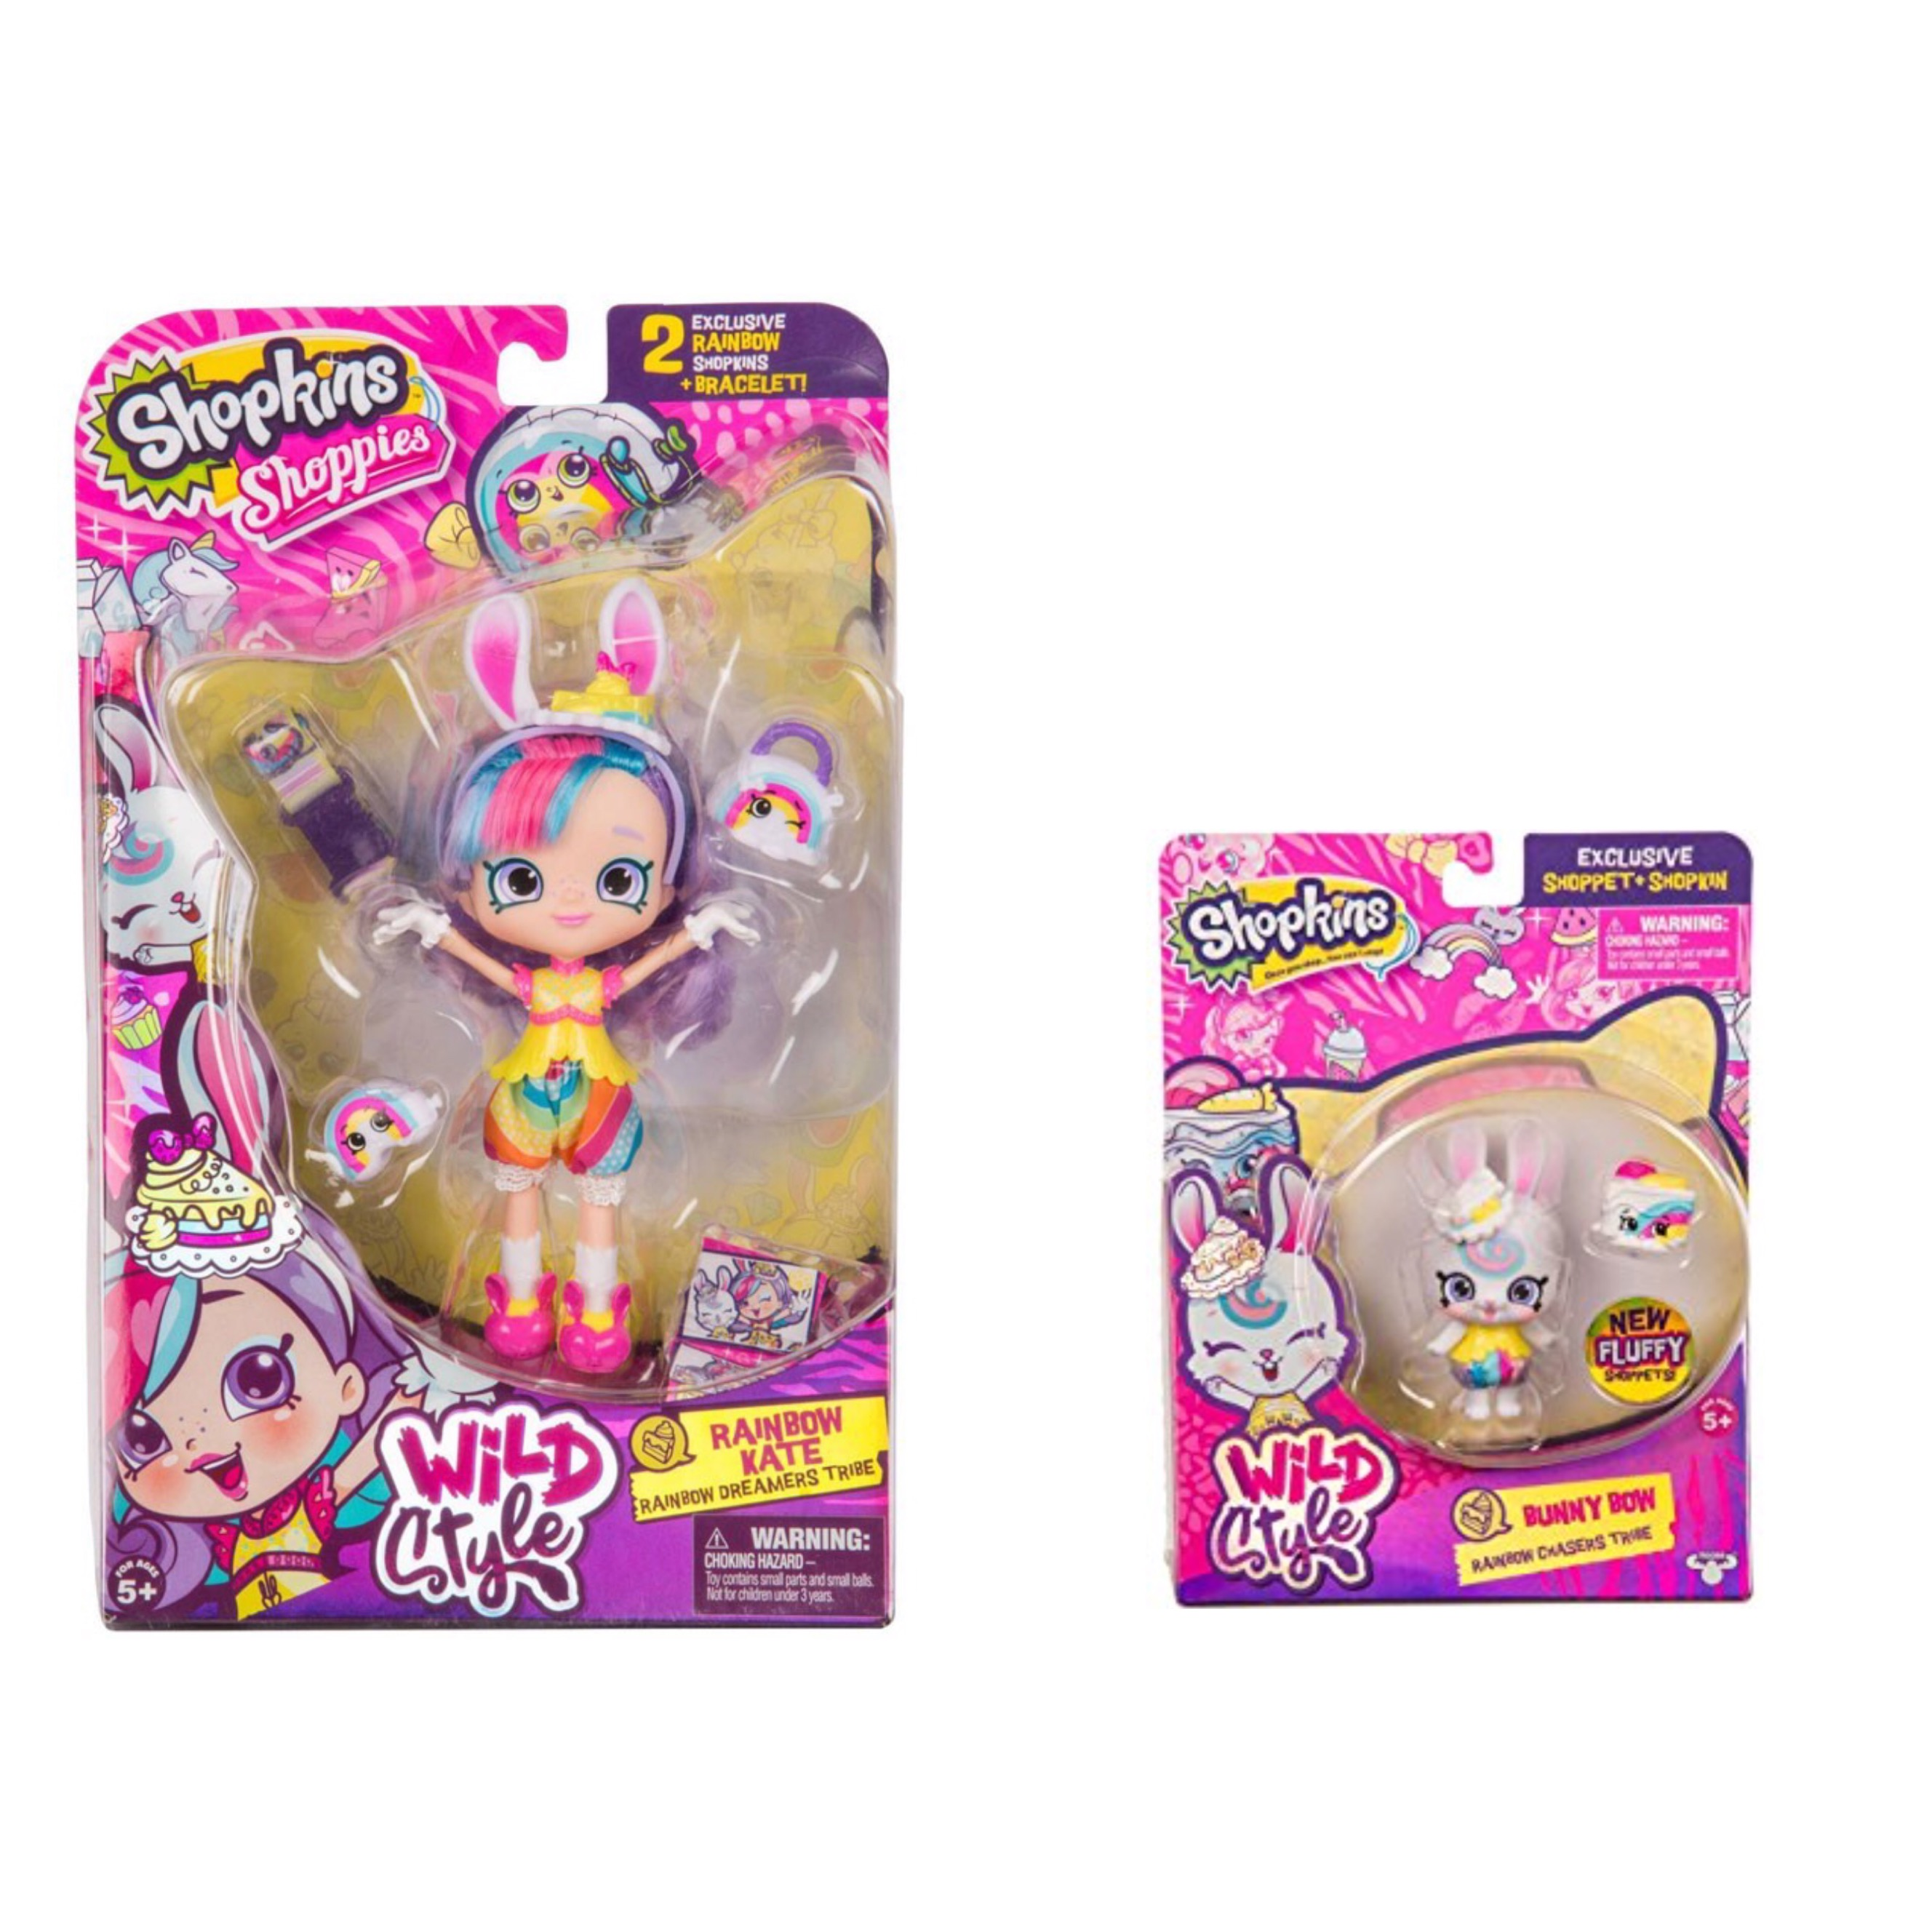 Shopkins Wild Style Rainbow Kate Shoppie Doll and Bunny Bow Shoppet Rainbow Chasers Tribe Bundle